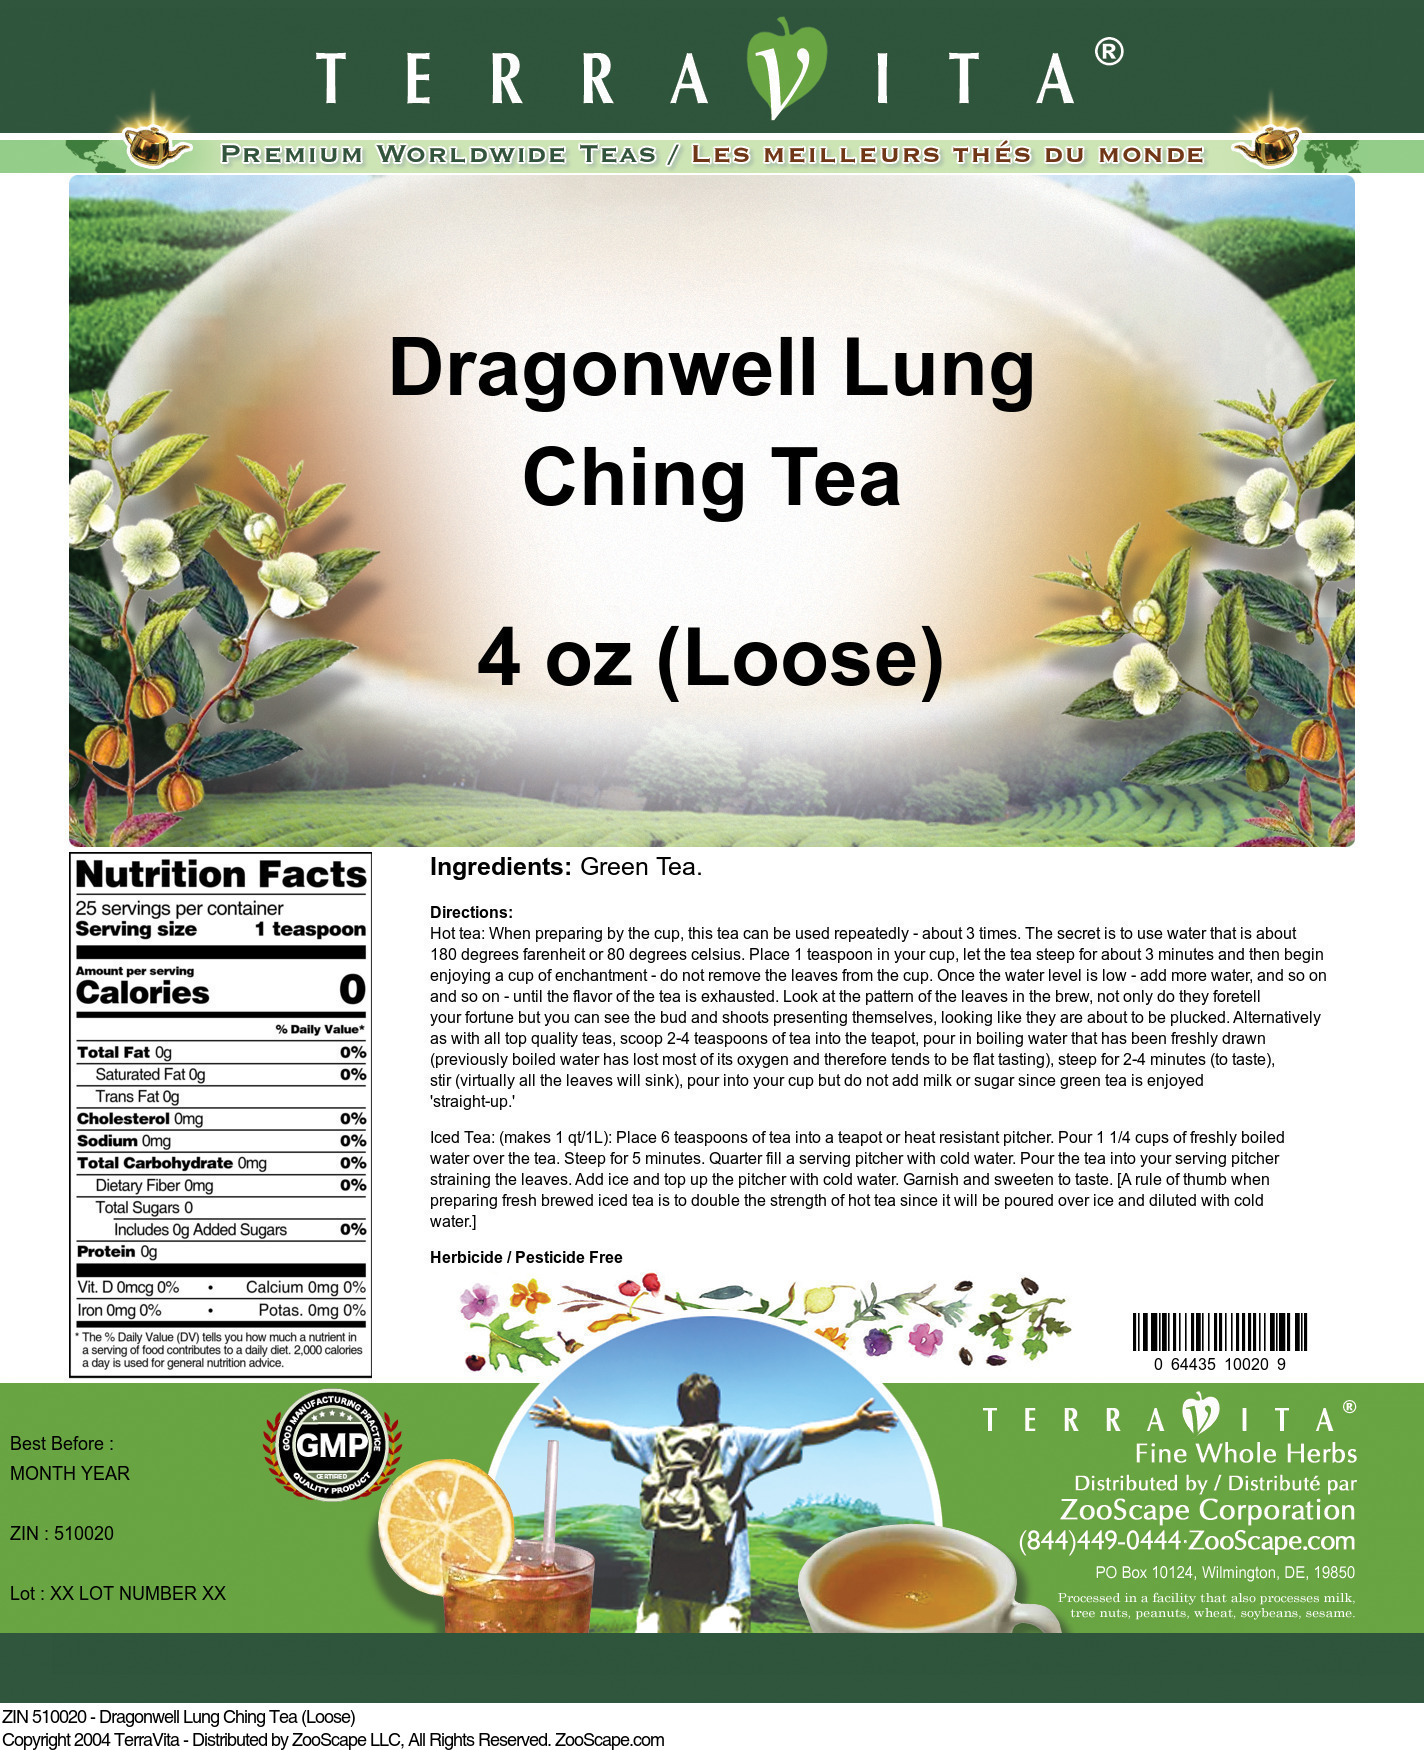 Dragonwell Lung Ching